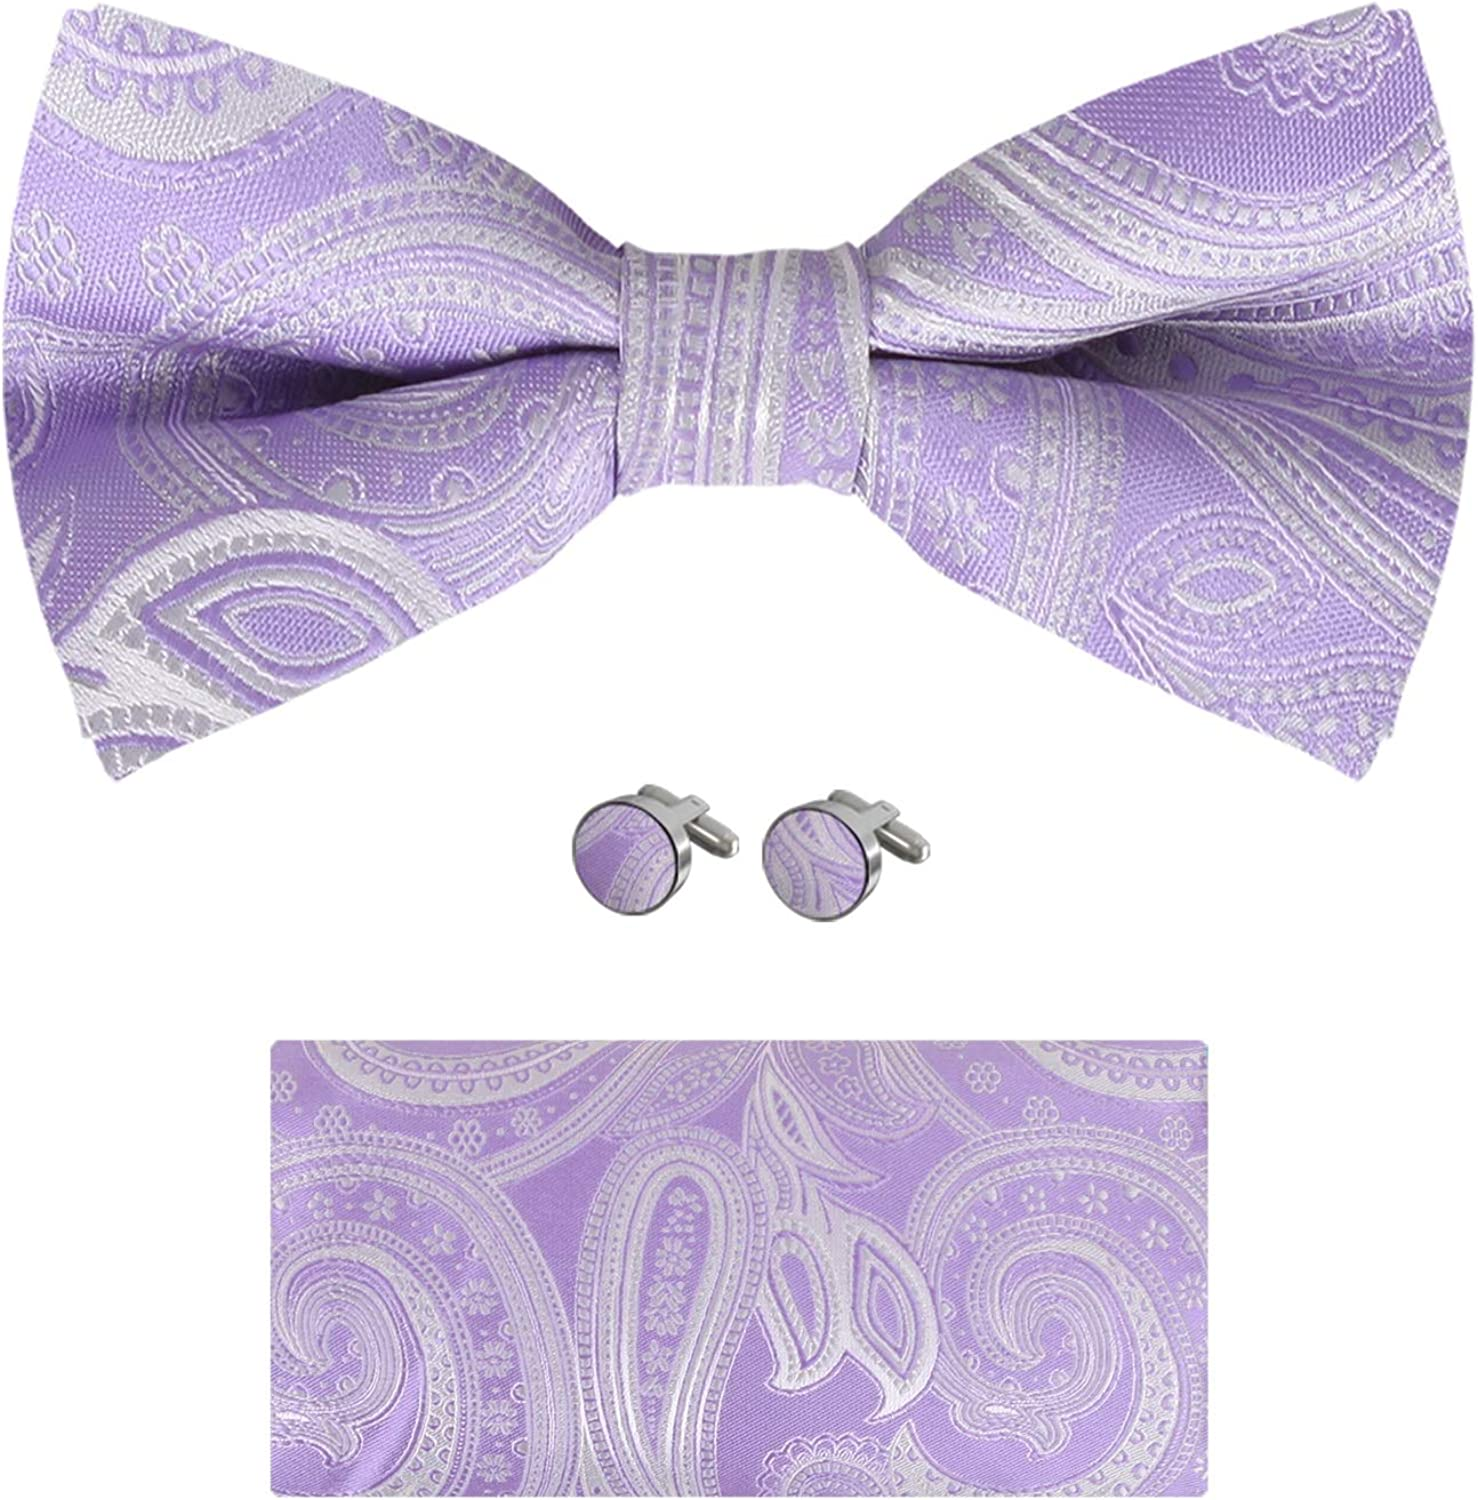 Epoint Bowties For Party Silk Pre-Tied Bow Ties Handkerchief Cuff-Links Set Adjustable Franch Cuff Shirt